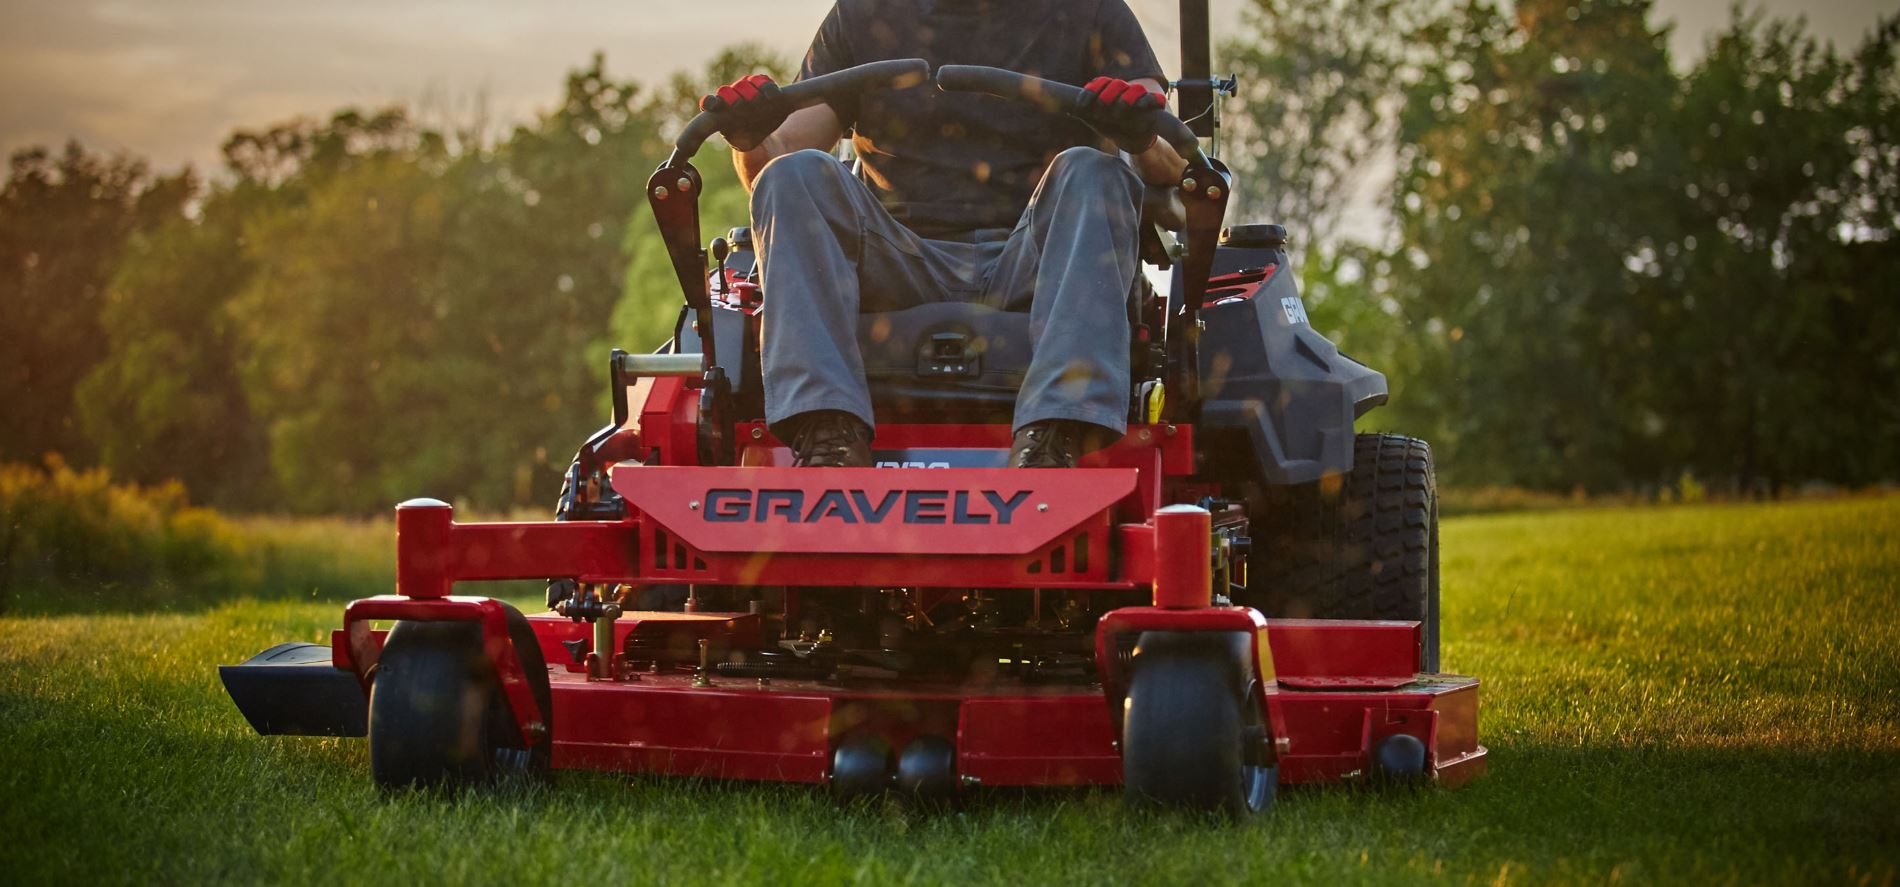 Gravely Zero-Turn Lawn Mower